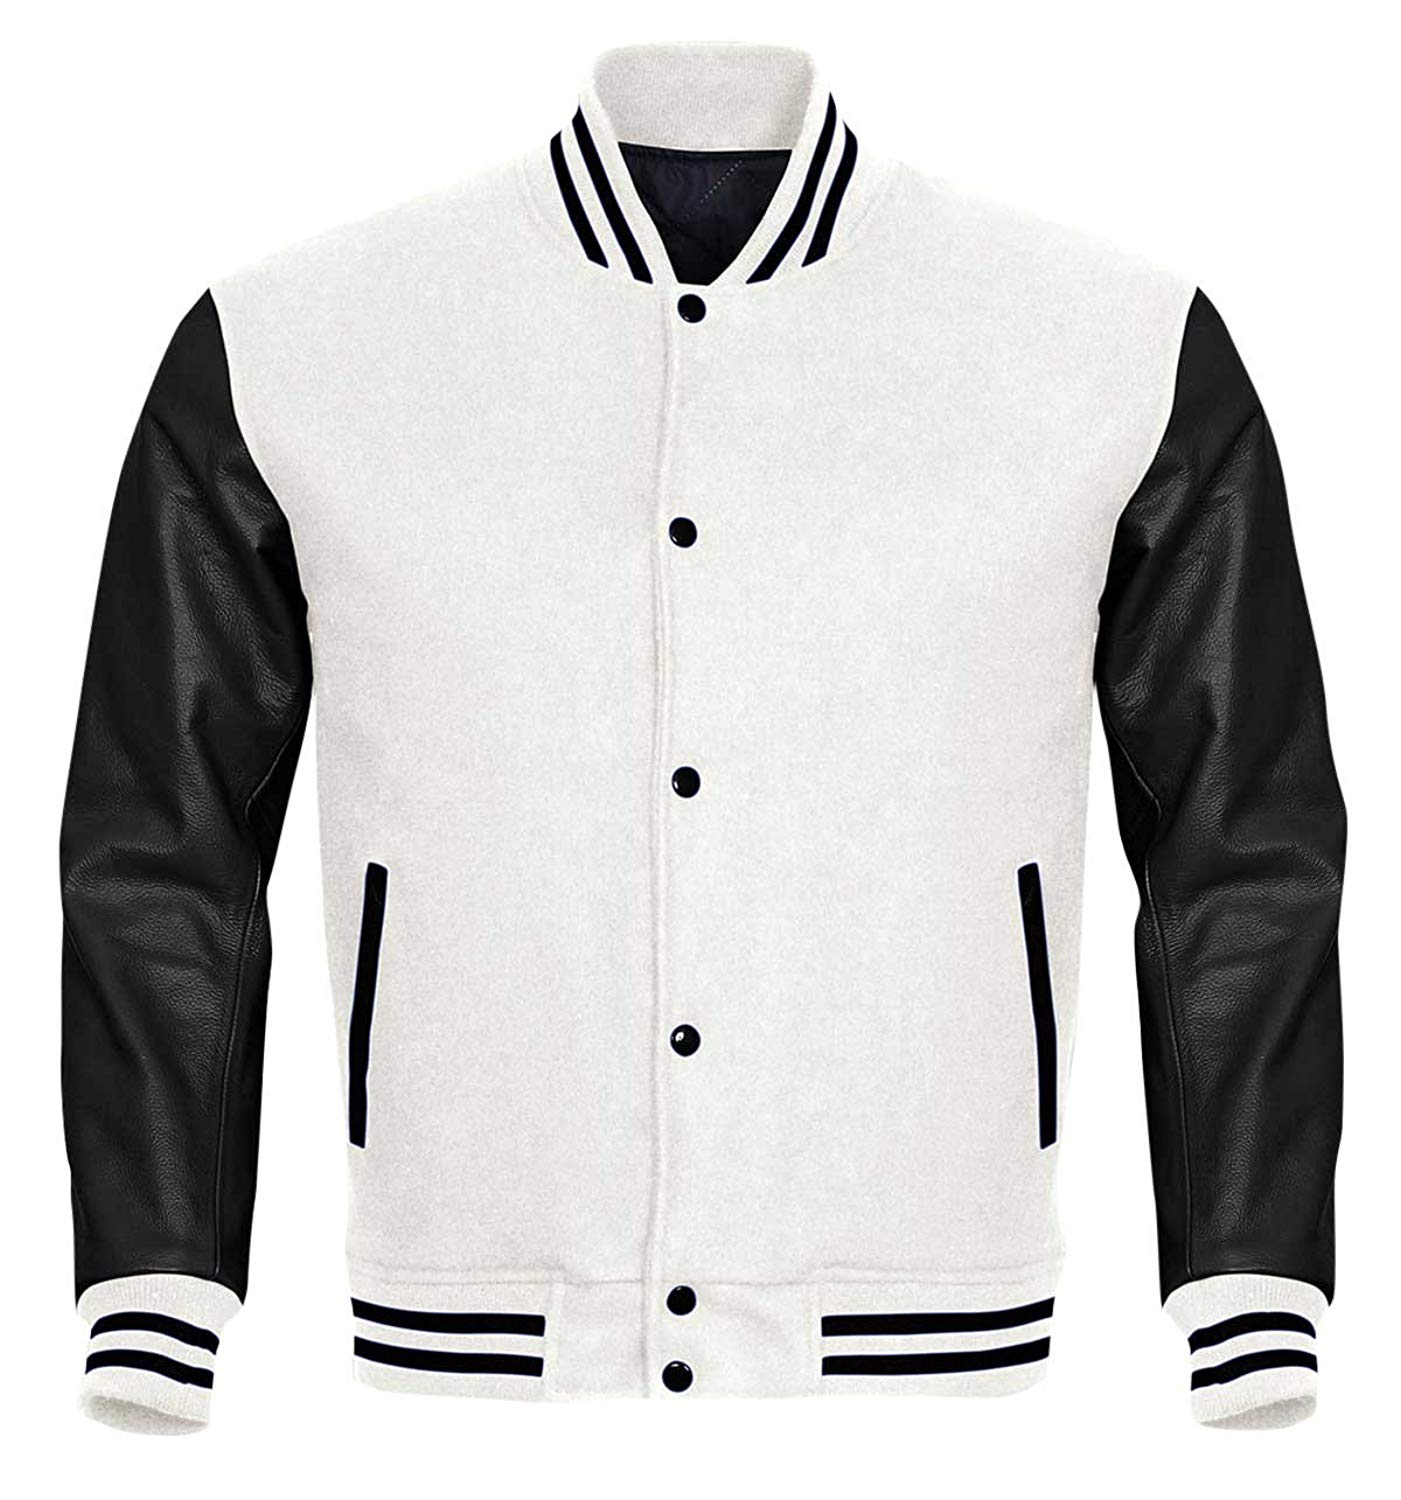 Cheap Mens Varsity Jacket With Leather Sleeves, find Mens